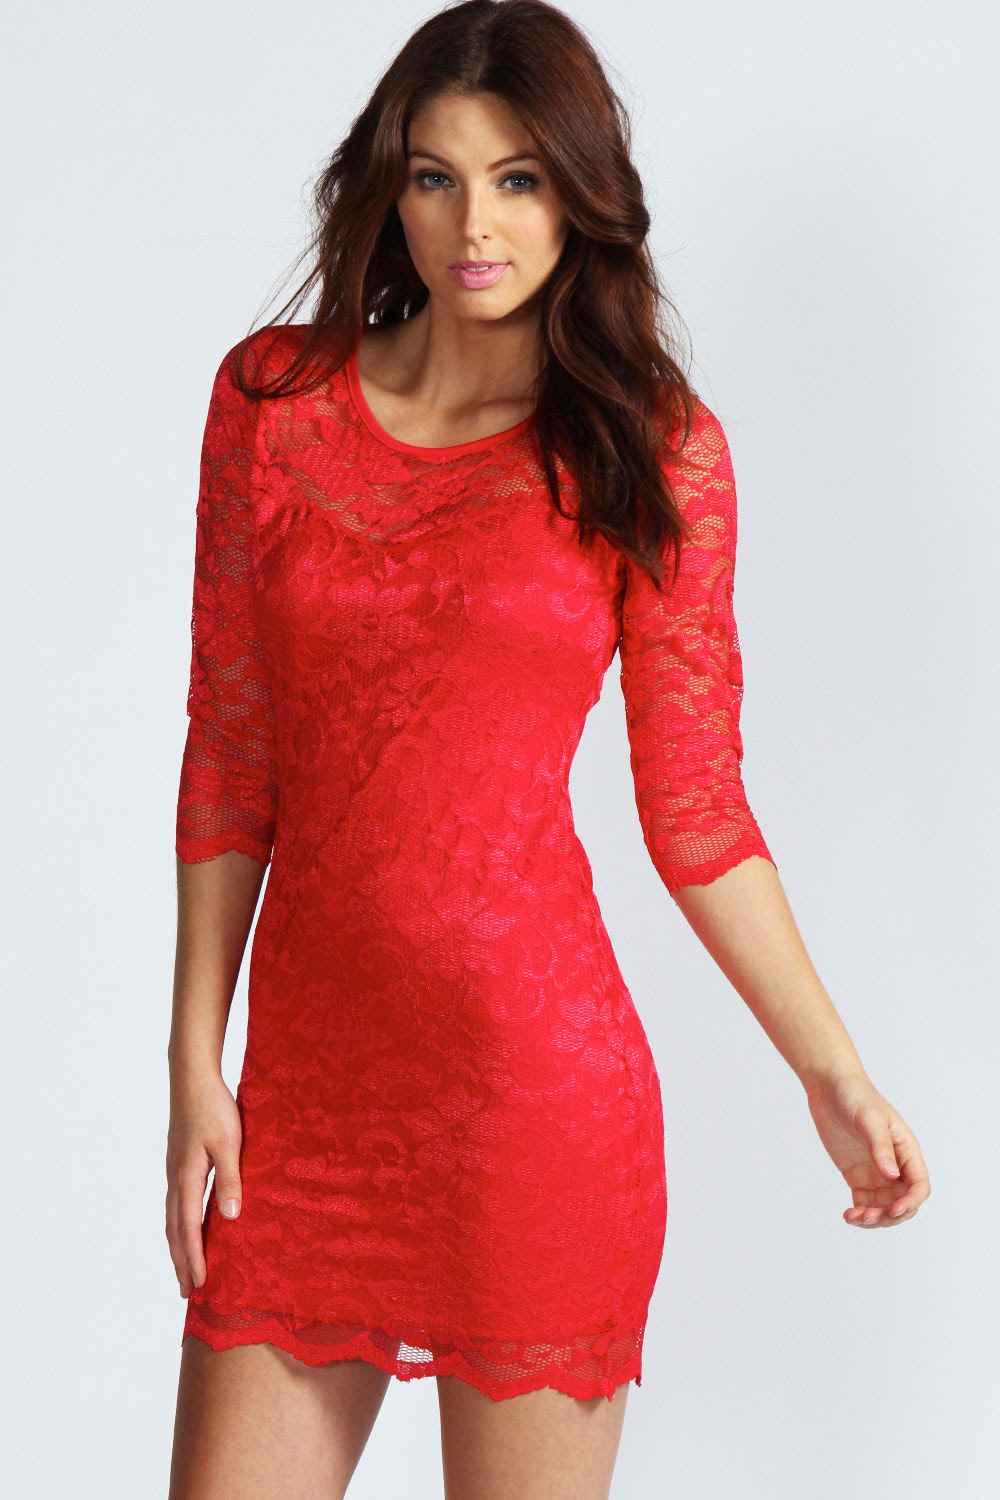 Bodycon dress for skinny girl up images usa stores